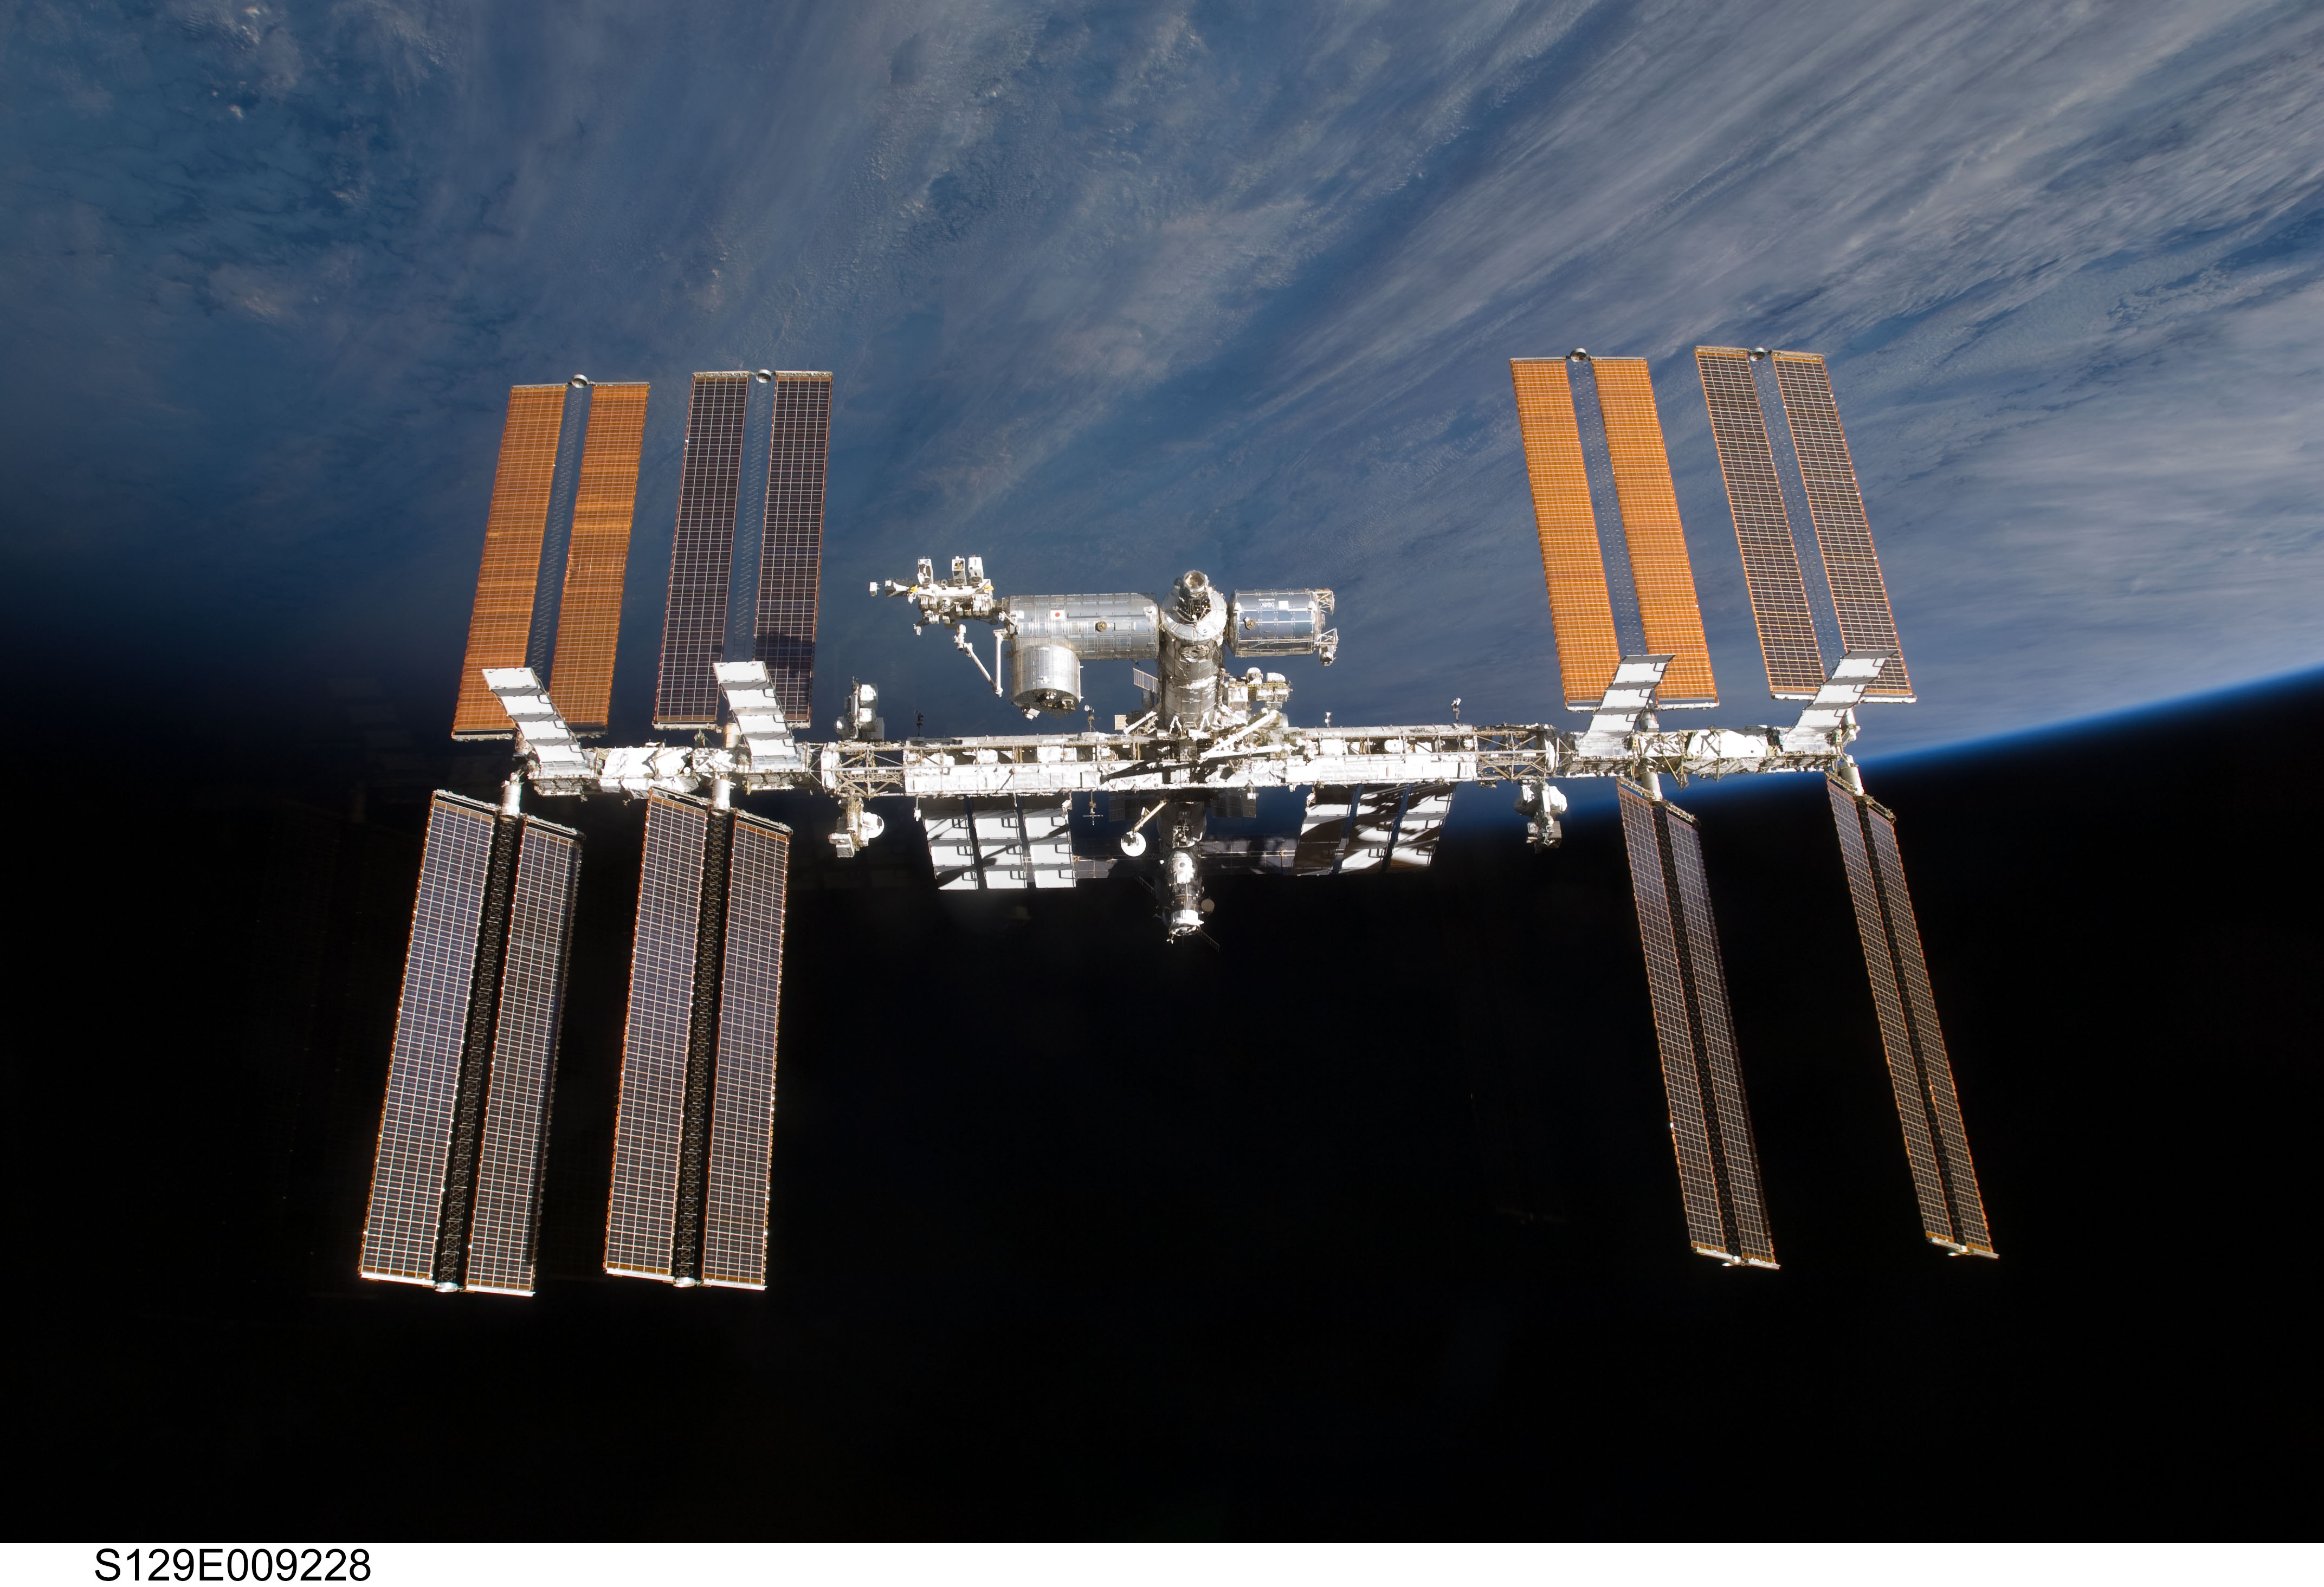 APOD: 2009 December 7 - The International Space Station ...